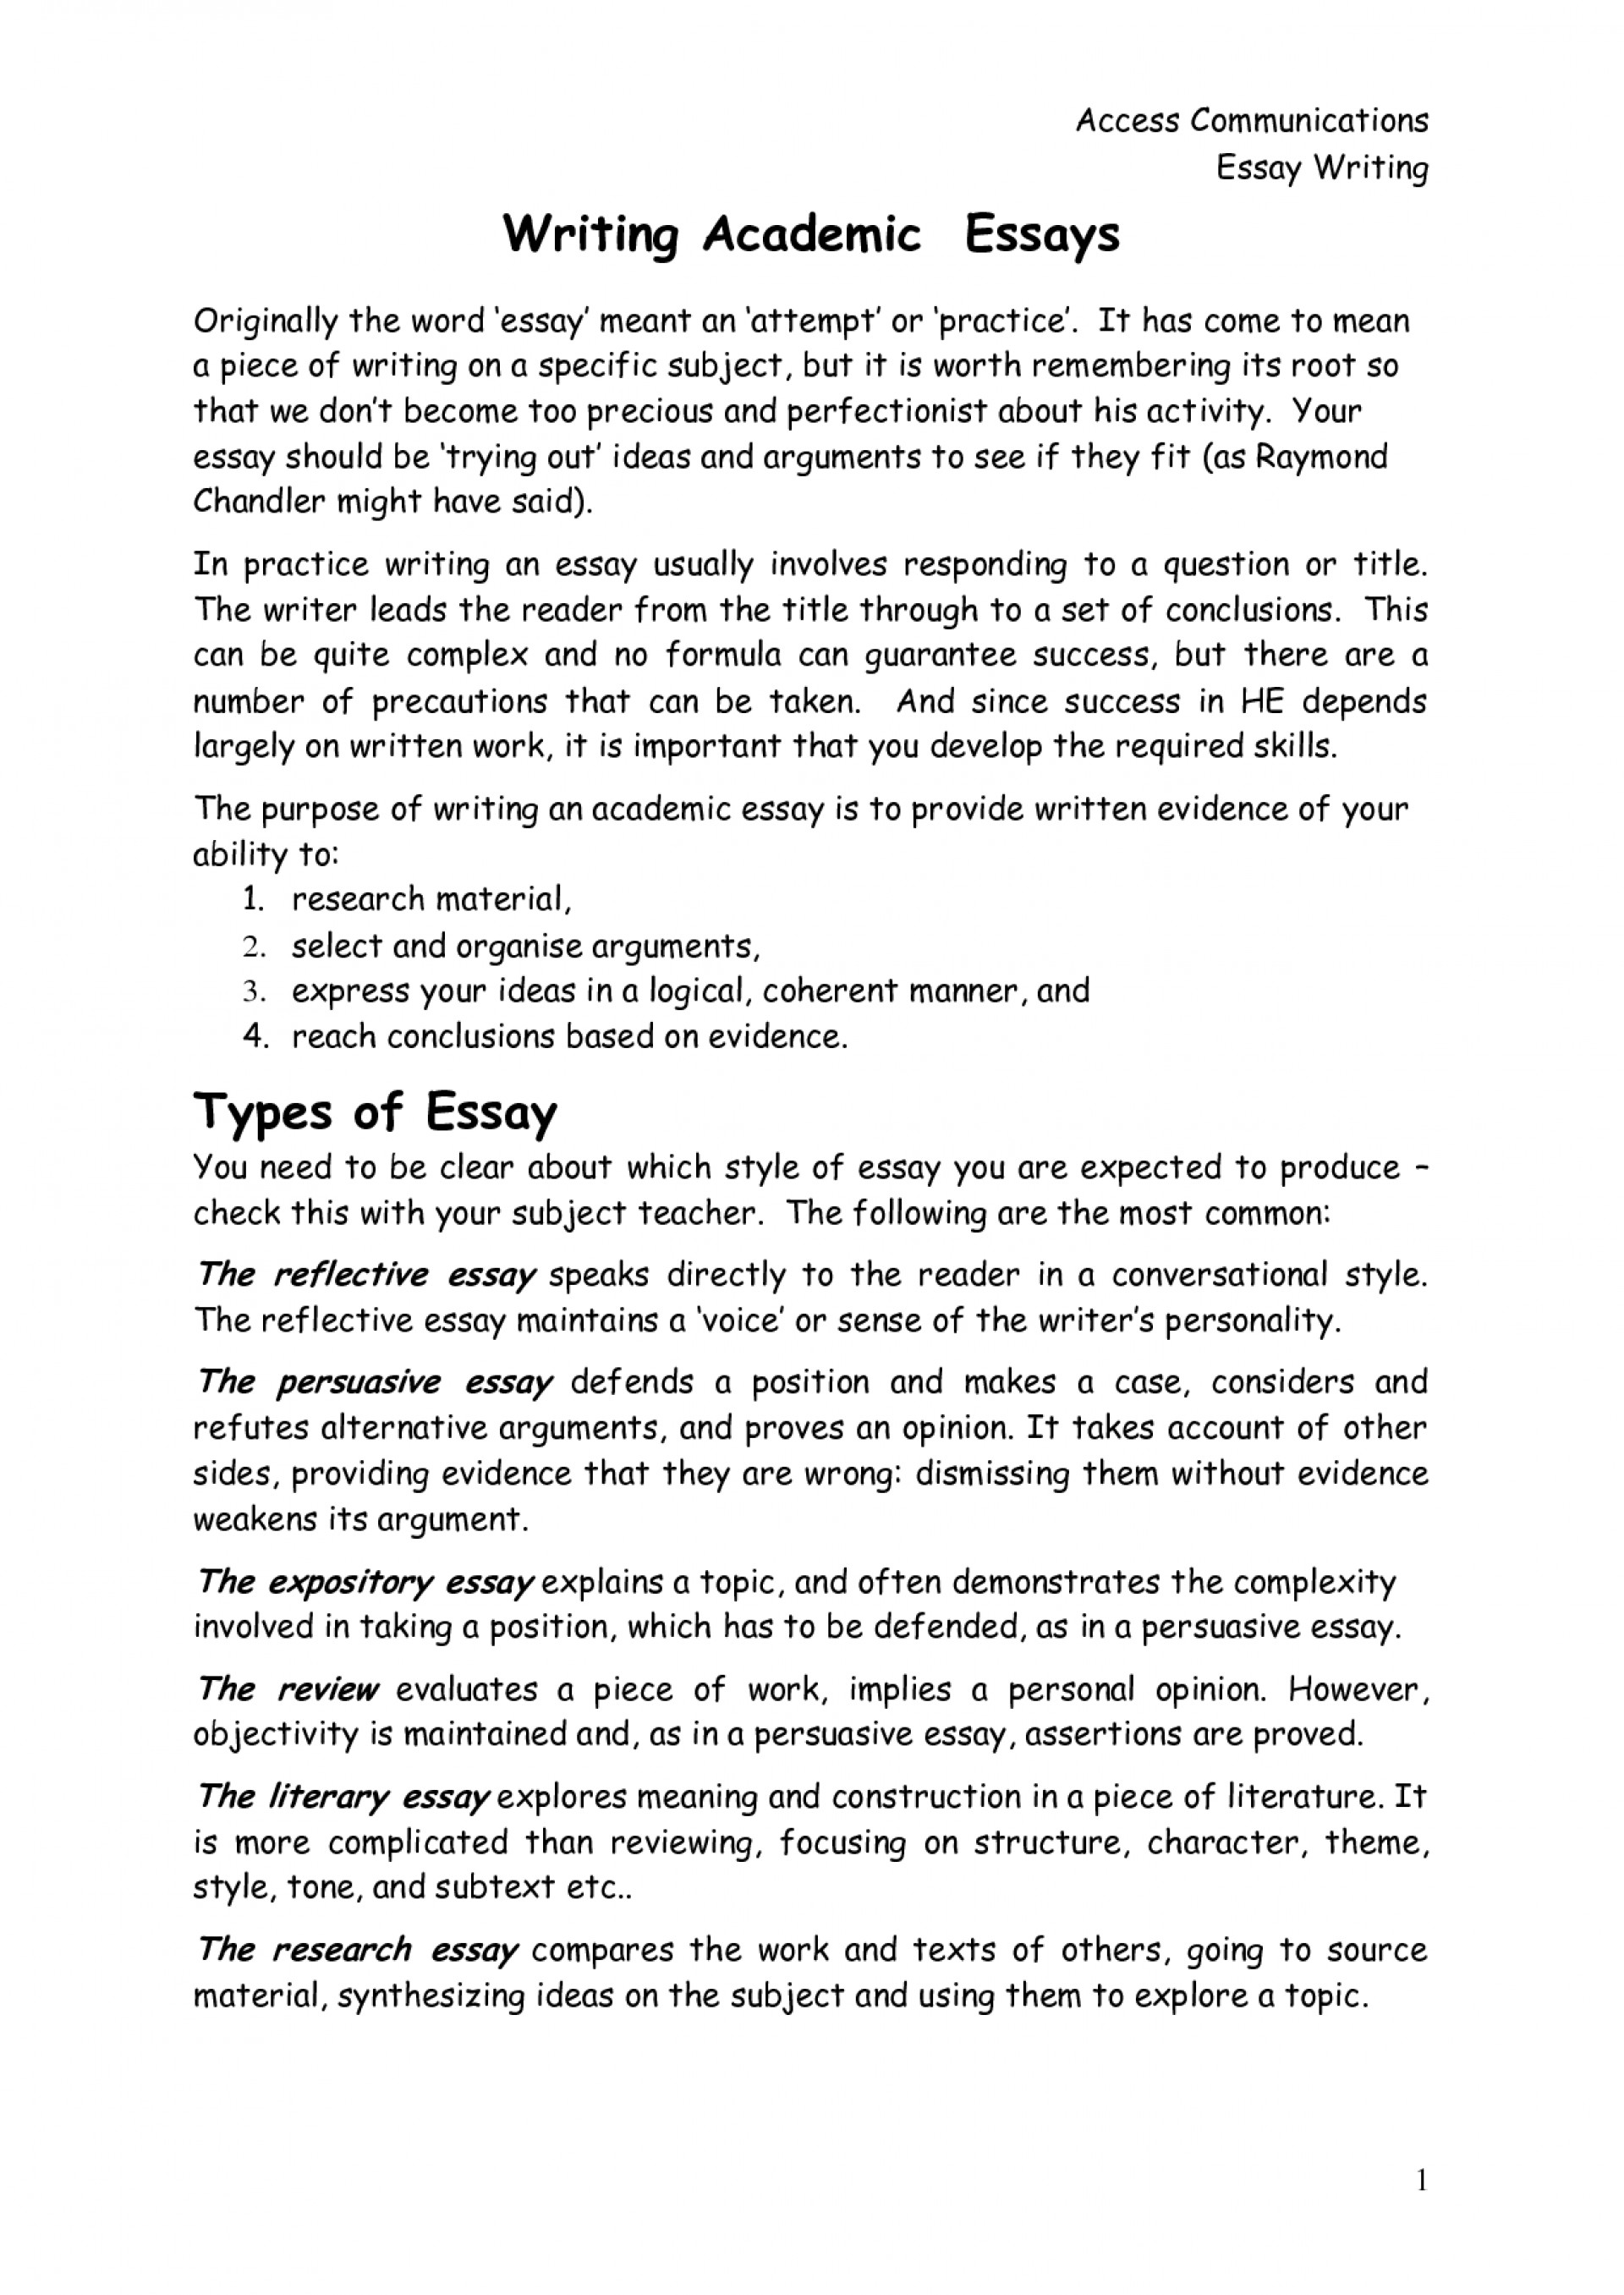 017 Essay Example How To Start Reflective Surprising A Introduction Write An 1920